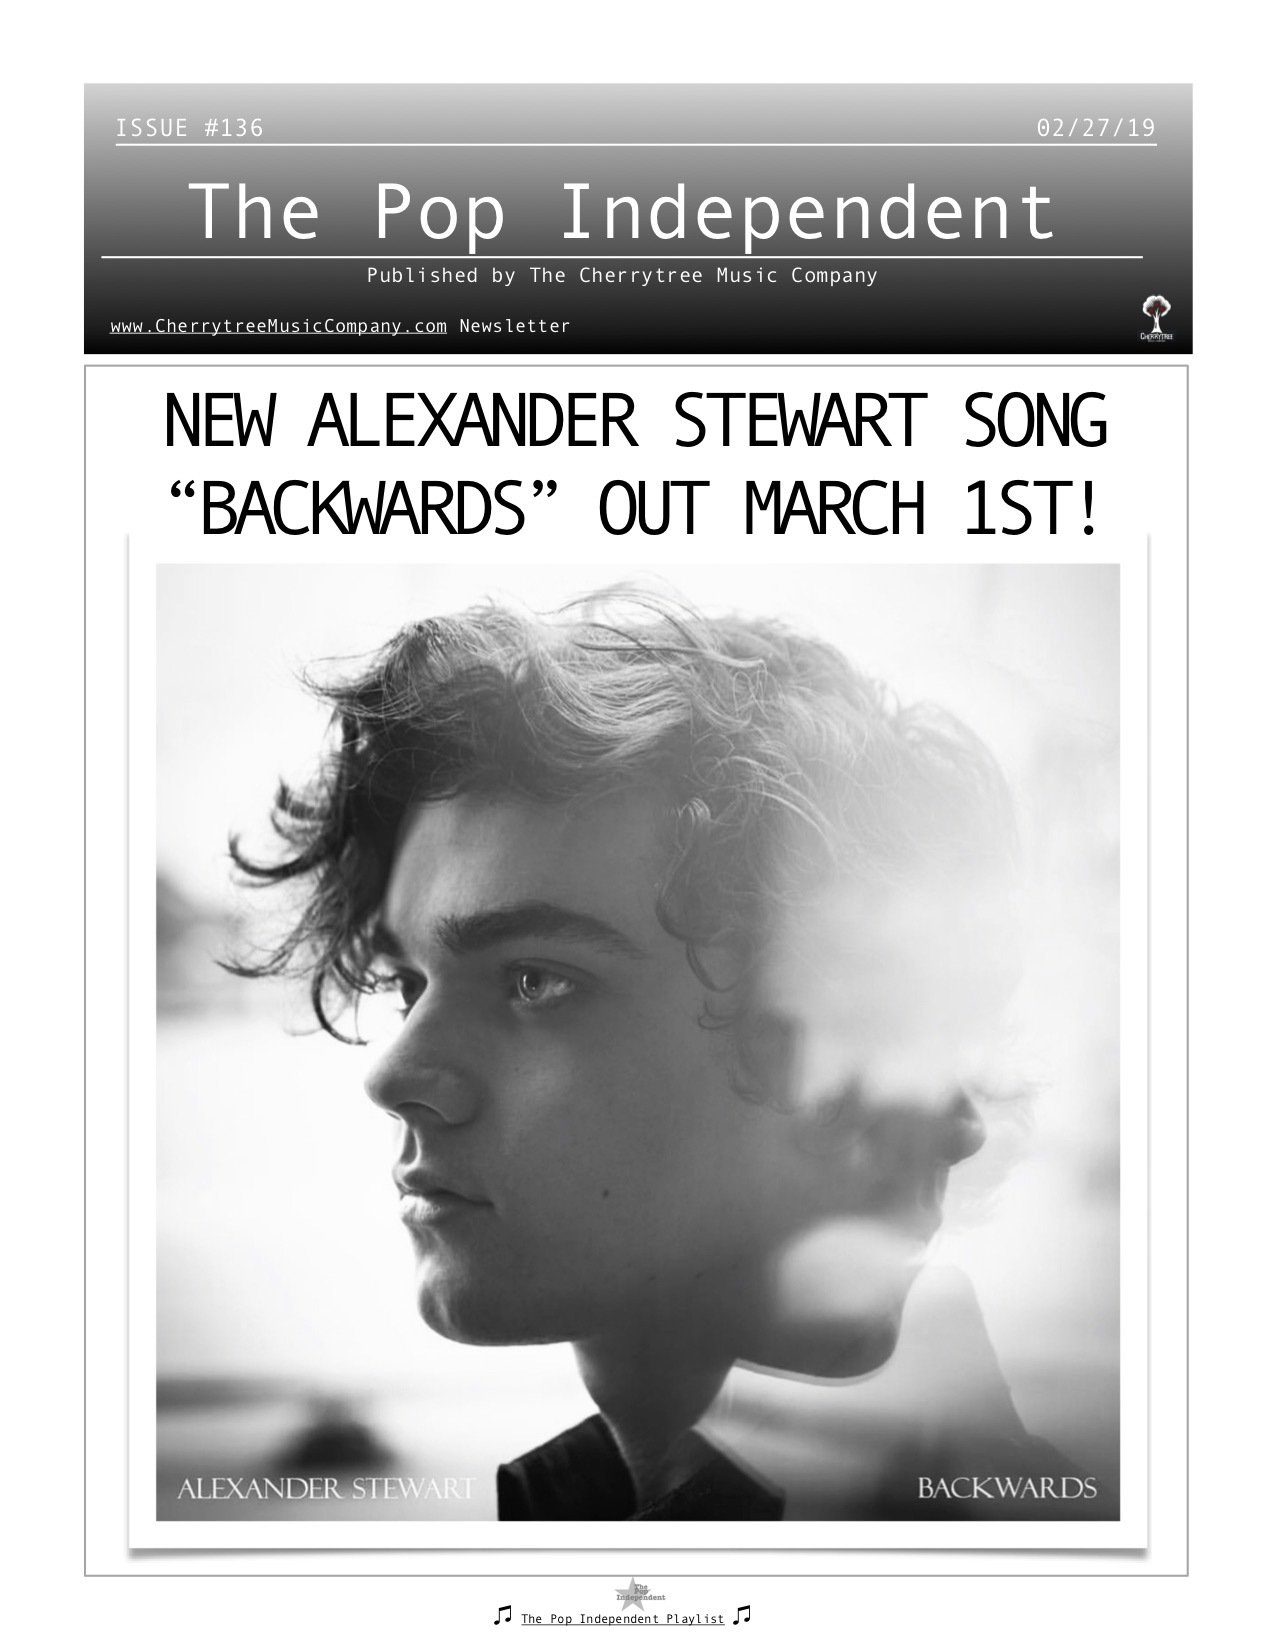 The Pop Independent, issue 136